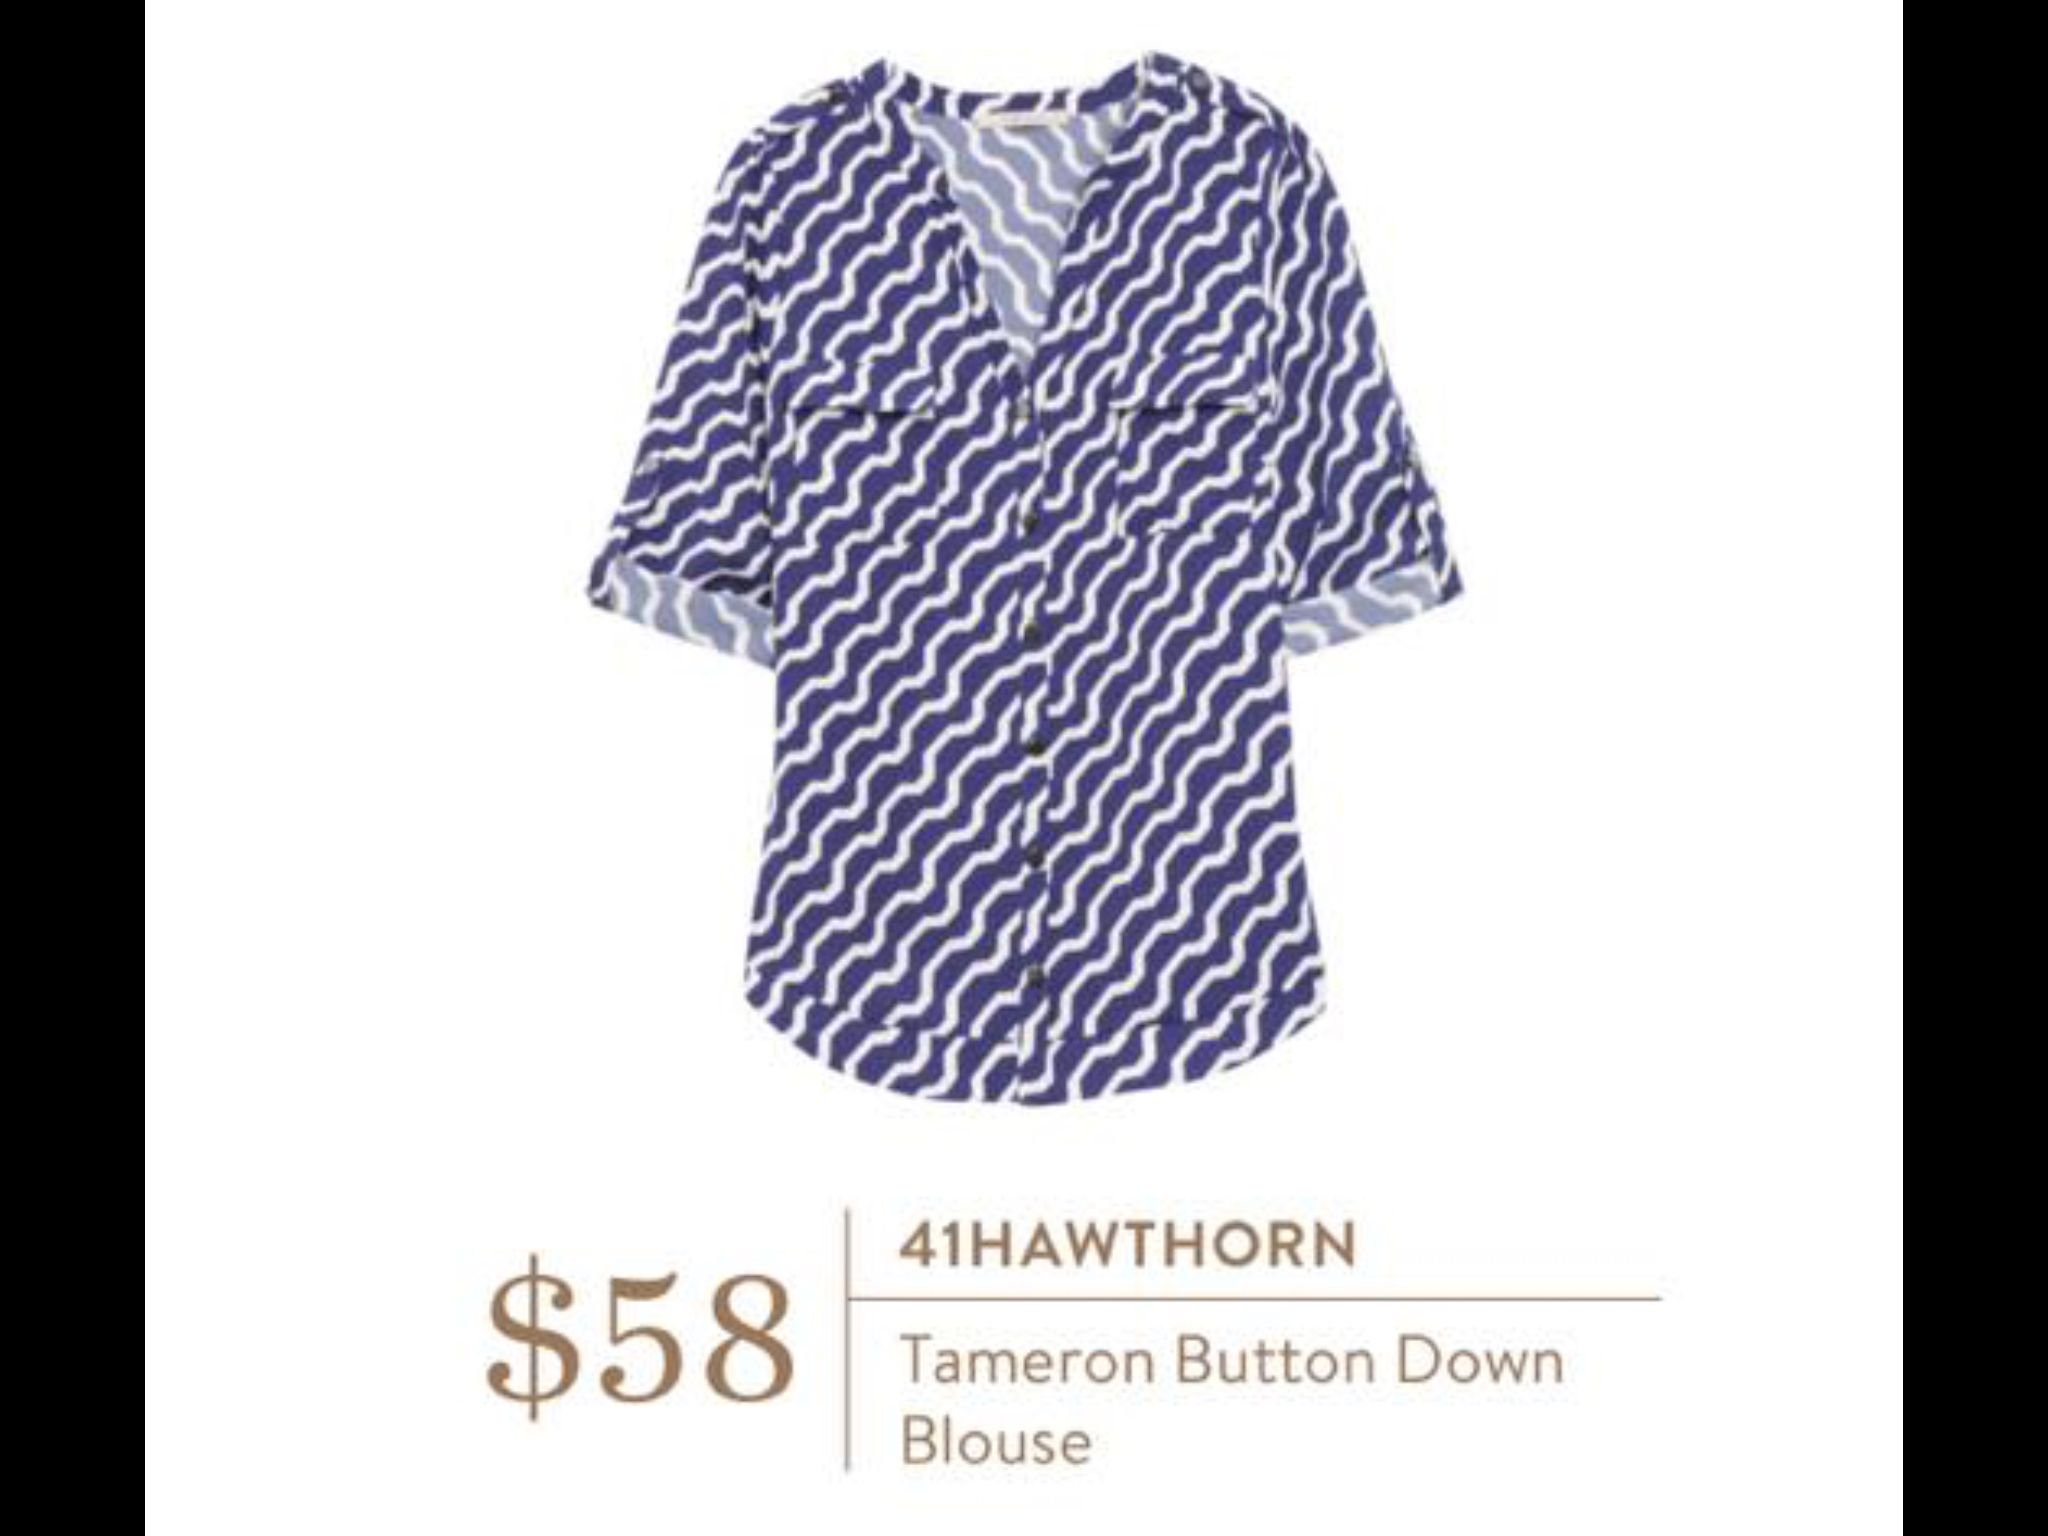 hawthorn tameron button down blouse fb stitch fix group board 41 hawthorn tameron button down blouse